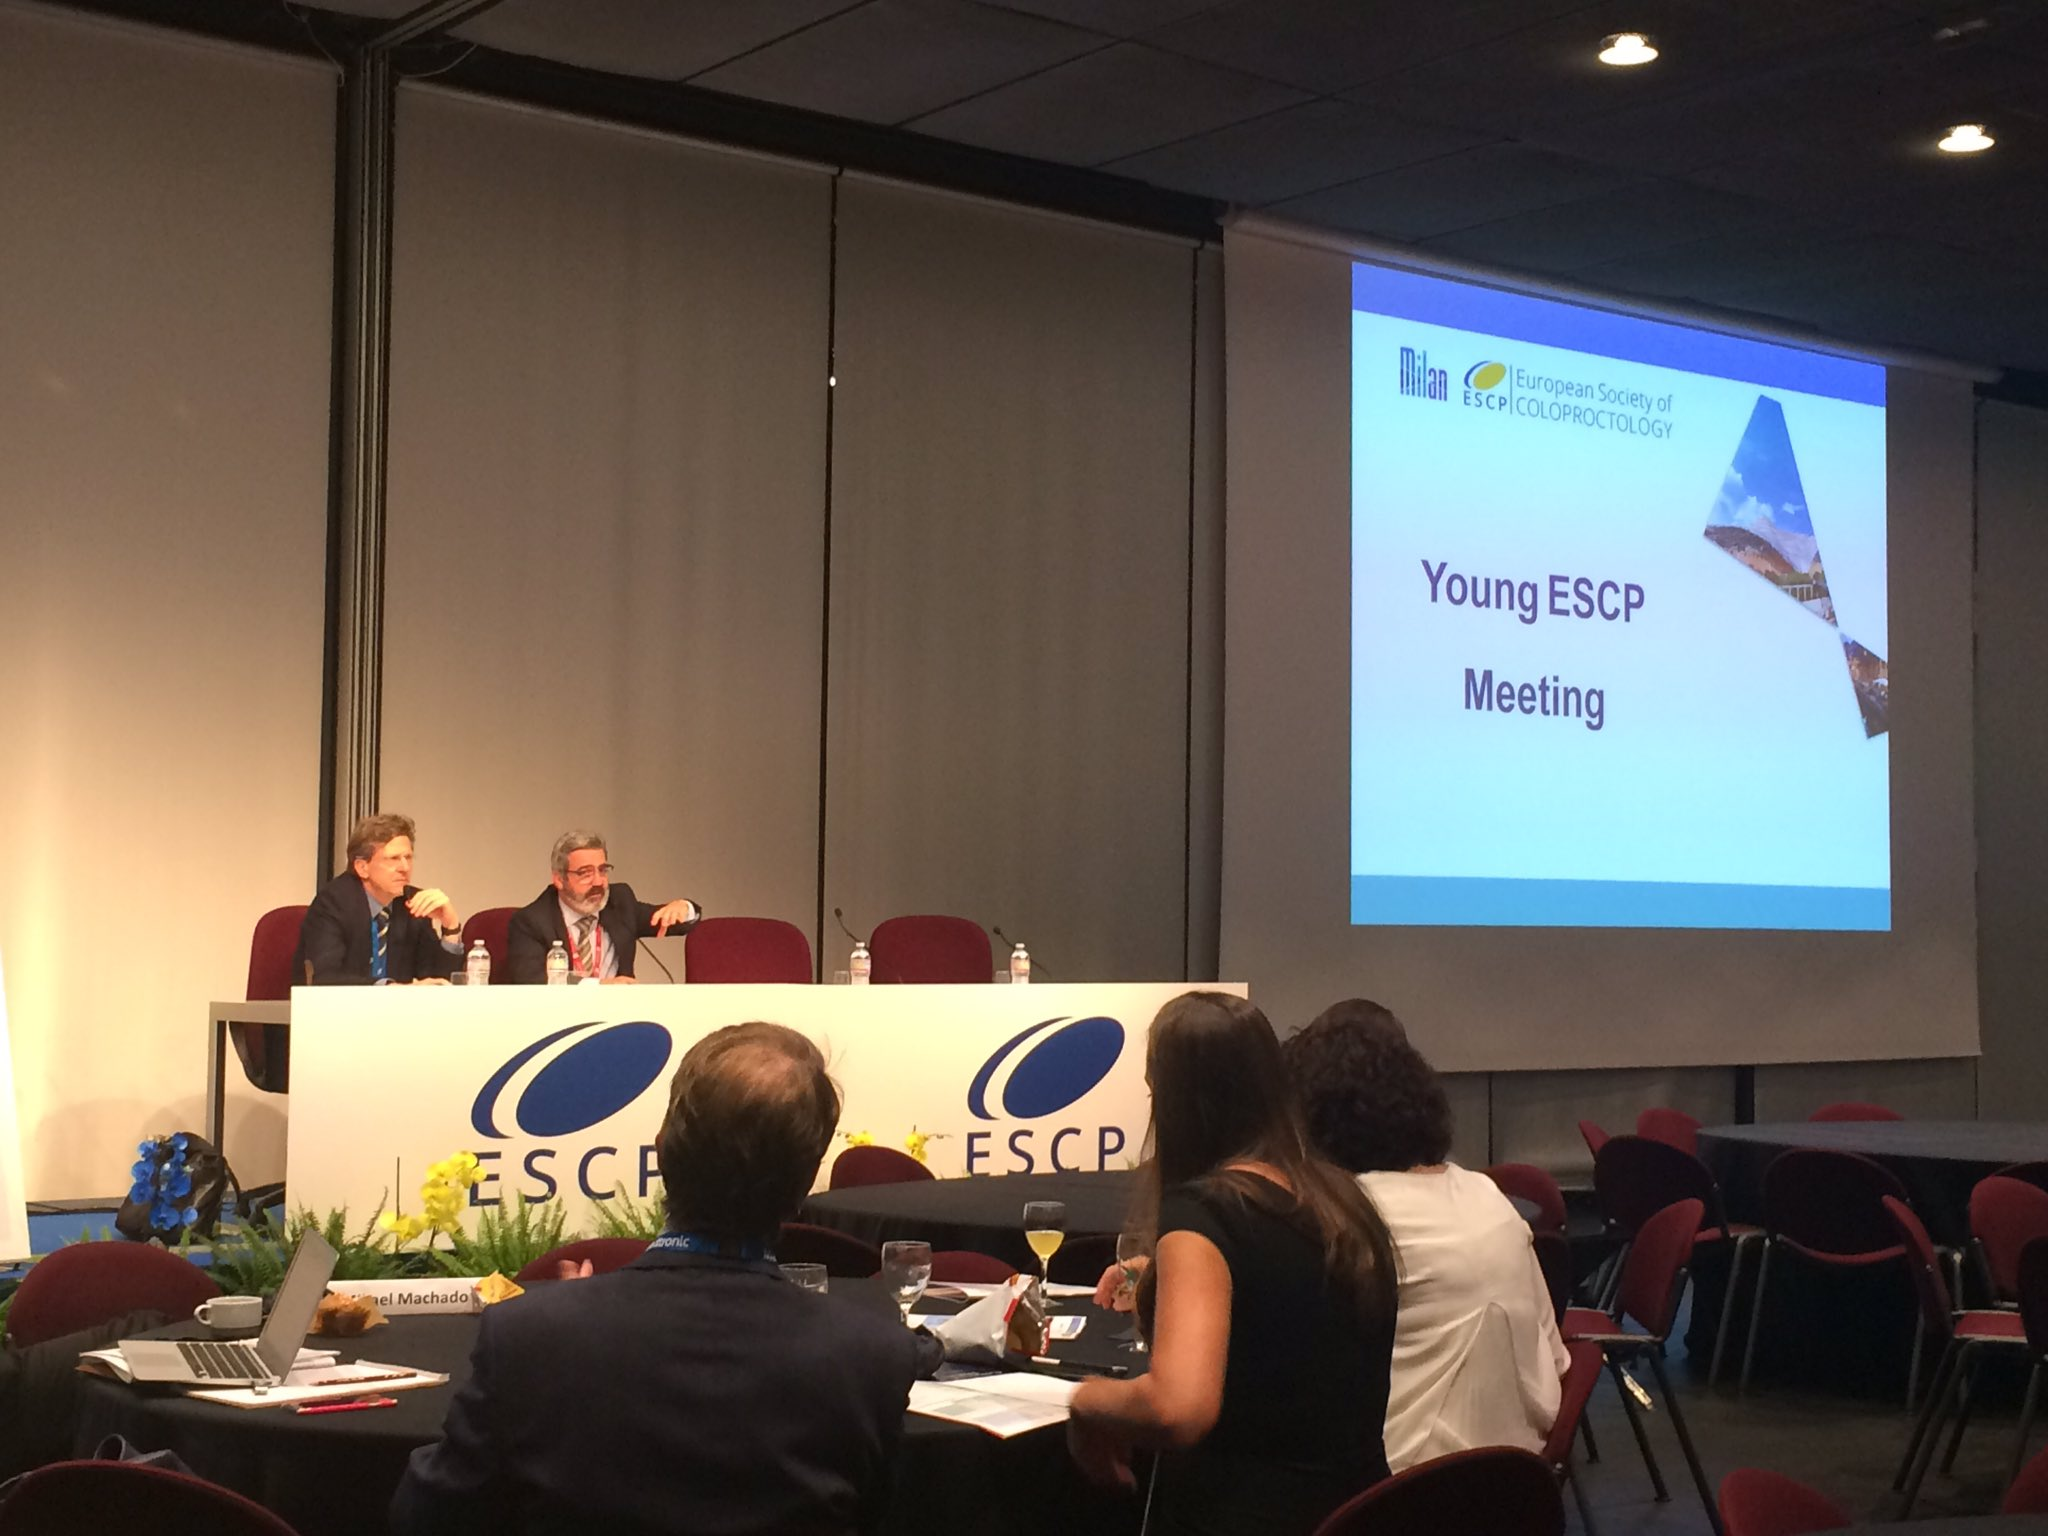 Attending the young ESCP Meeting #escp2016 https://t.co/6lVld4tFS2